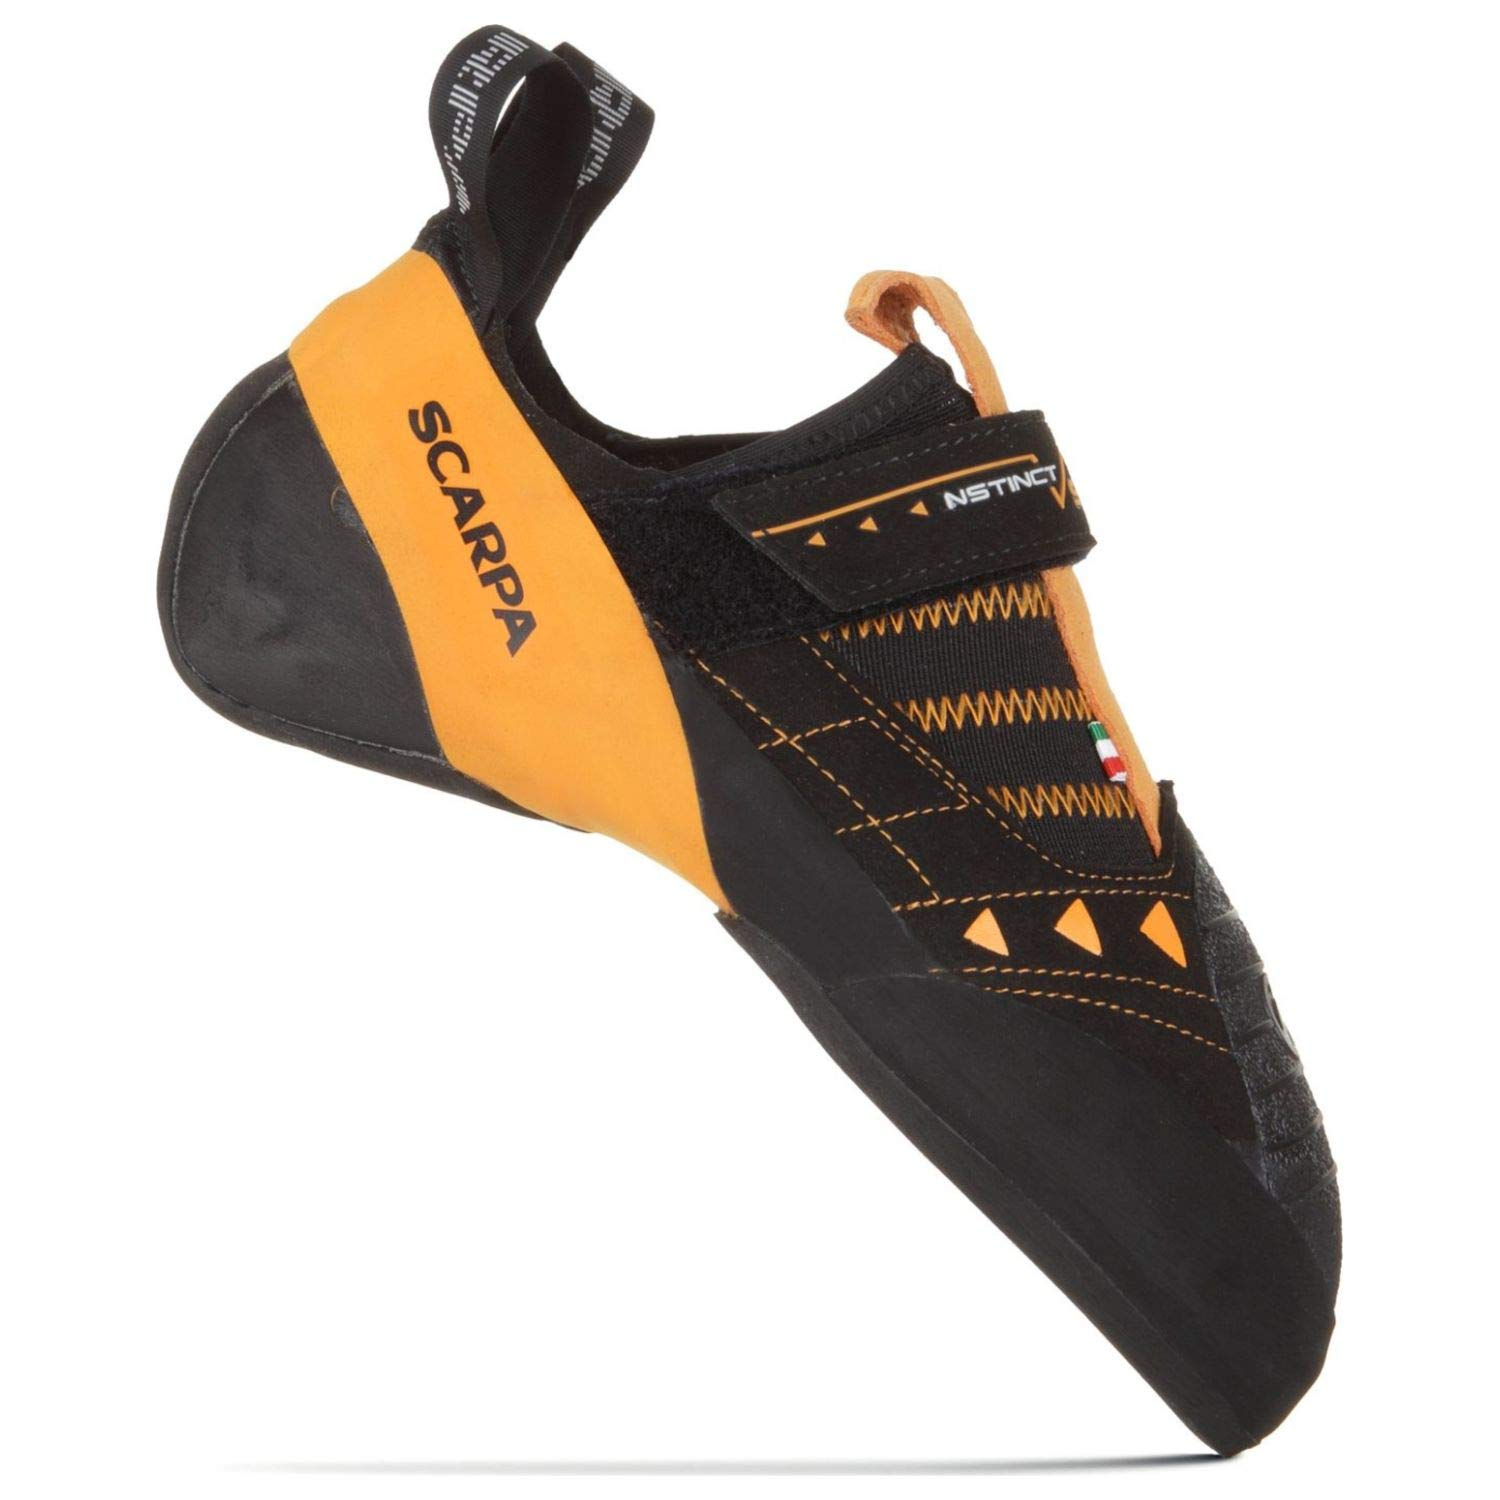 SCARPA Instinct VS Climbing Shoe Black/Orange 46 by SCARPA